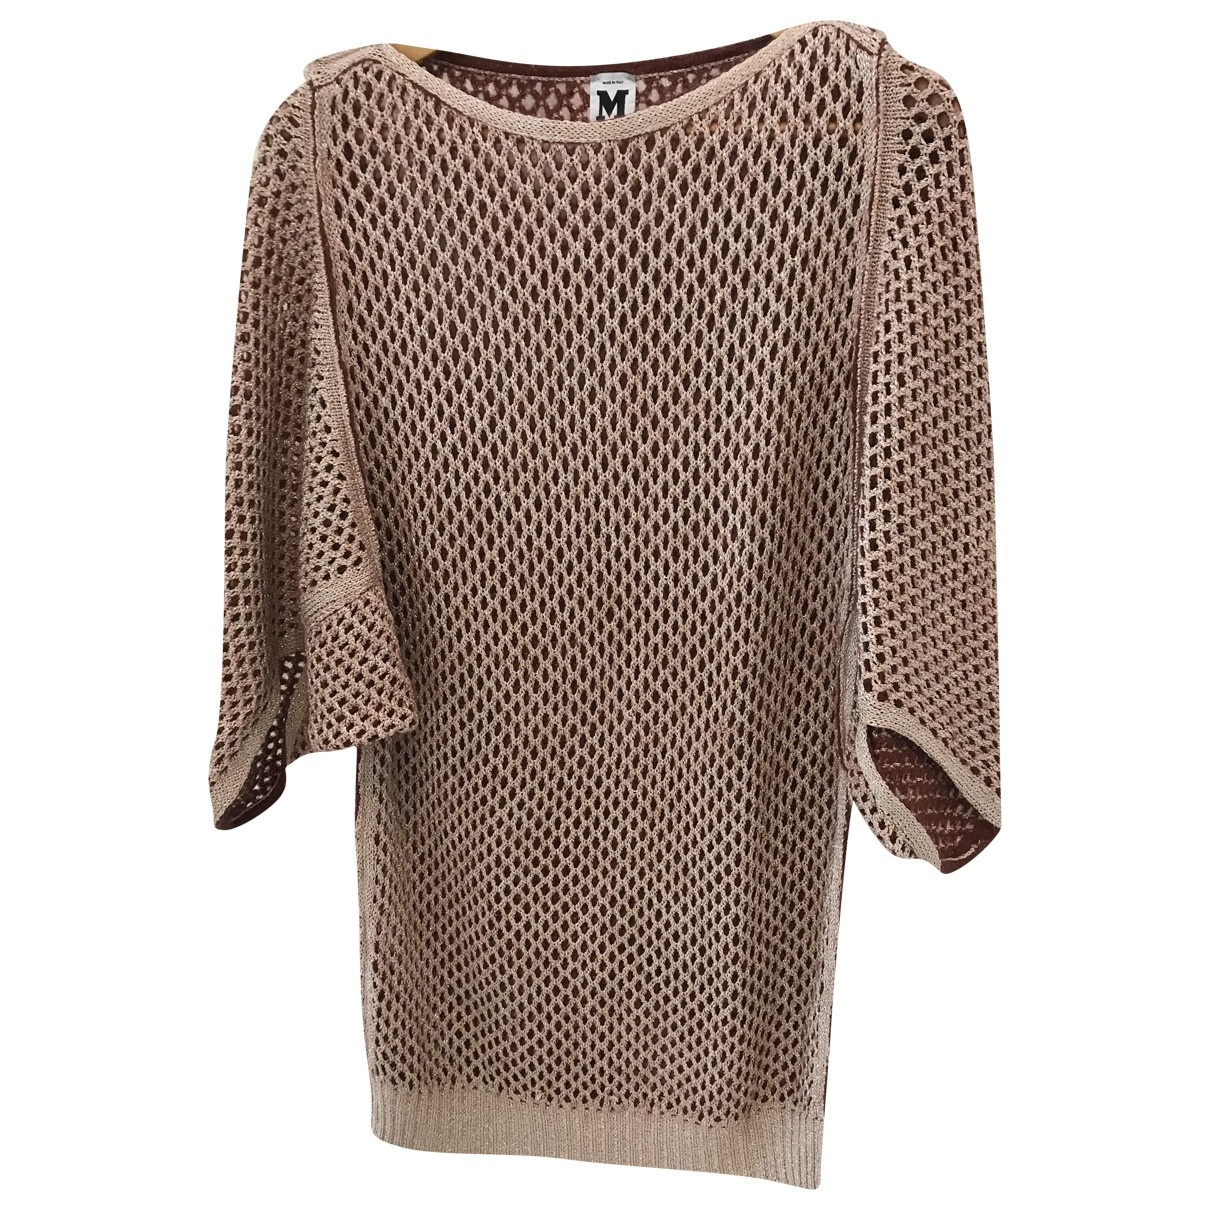 M Missoni \N Gold Knitwear for Women 42 IT